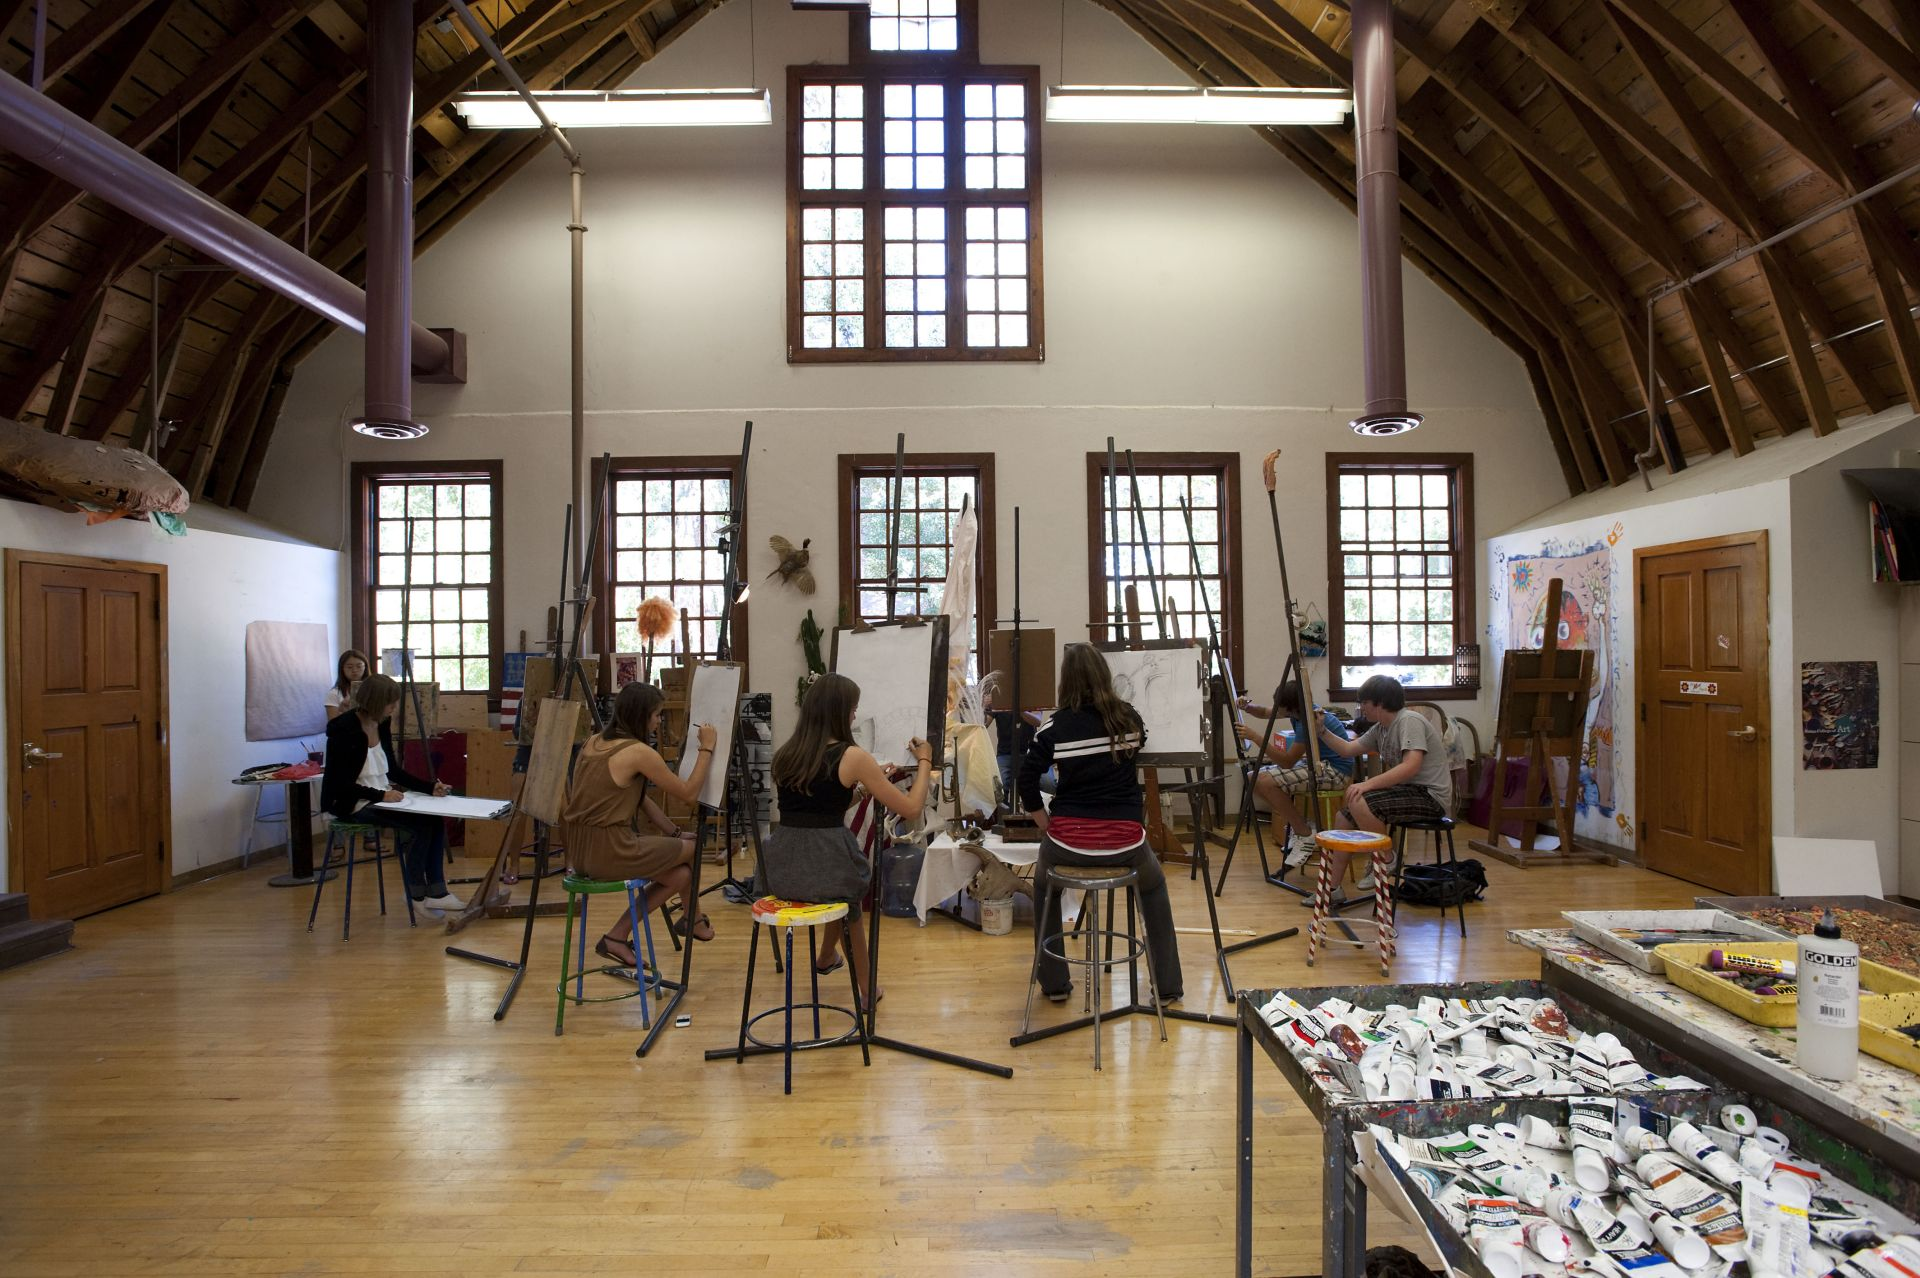 The William Thayer Tutt Arts Center is casually known as the Art Barn. FVS supplies all the necessary equipment for you to succeed in any art form, including drawing, painting, photography, sculpture, jewelry-making and more.